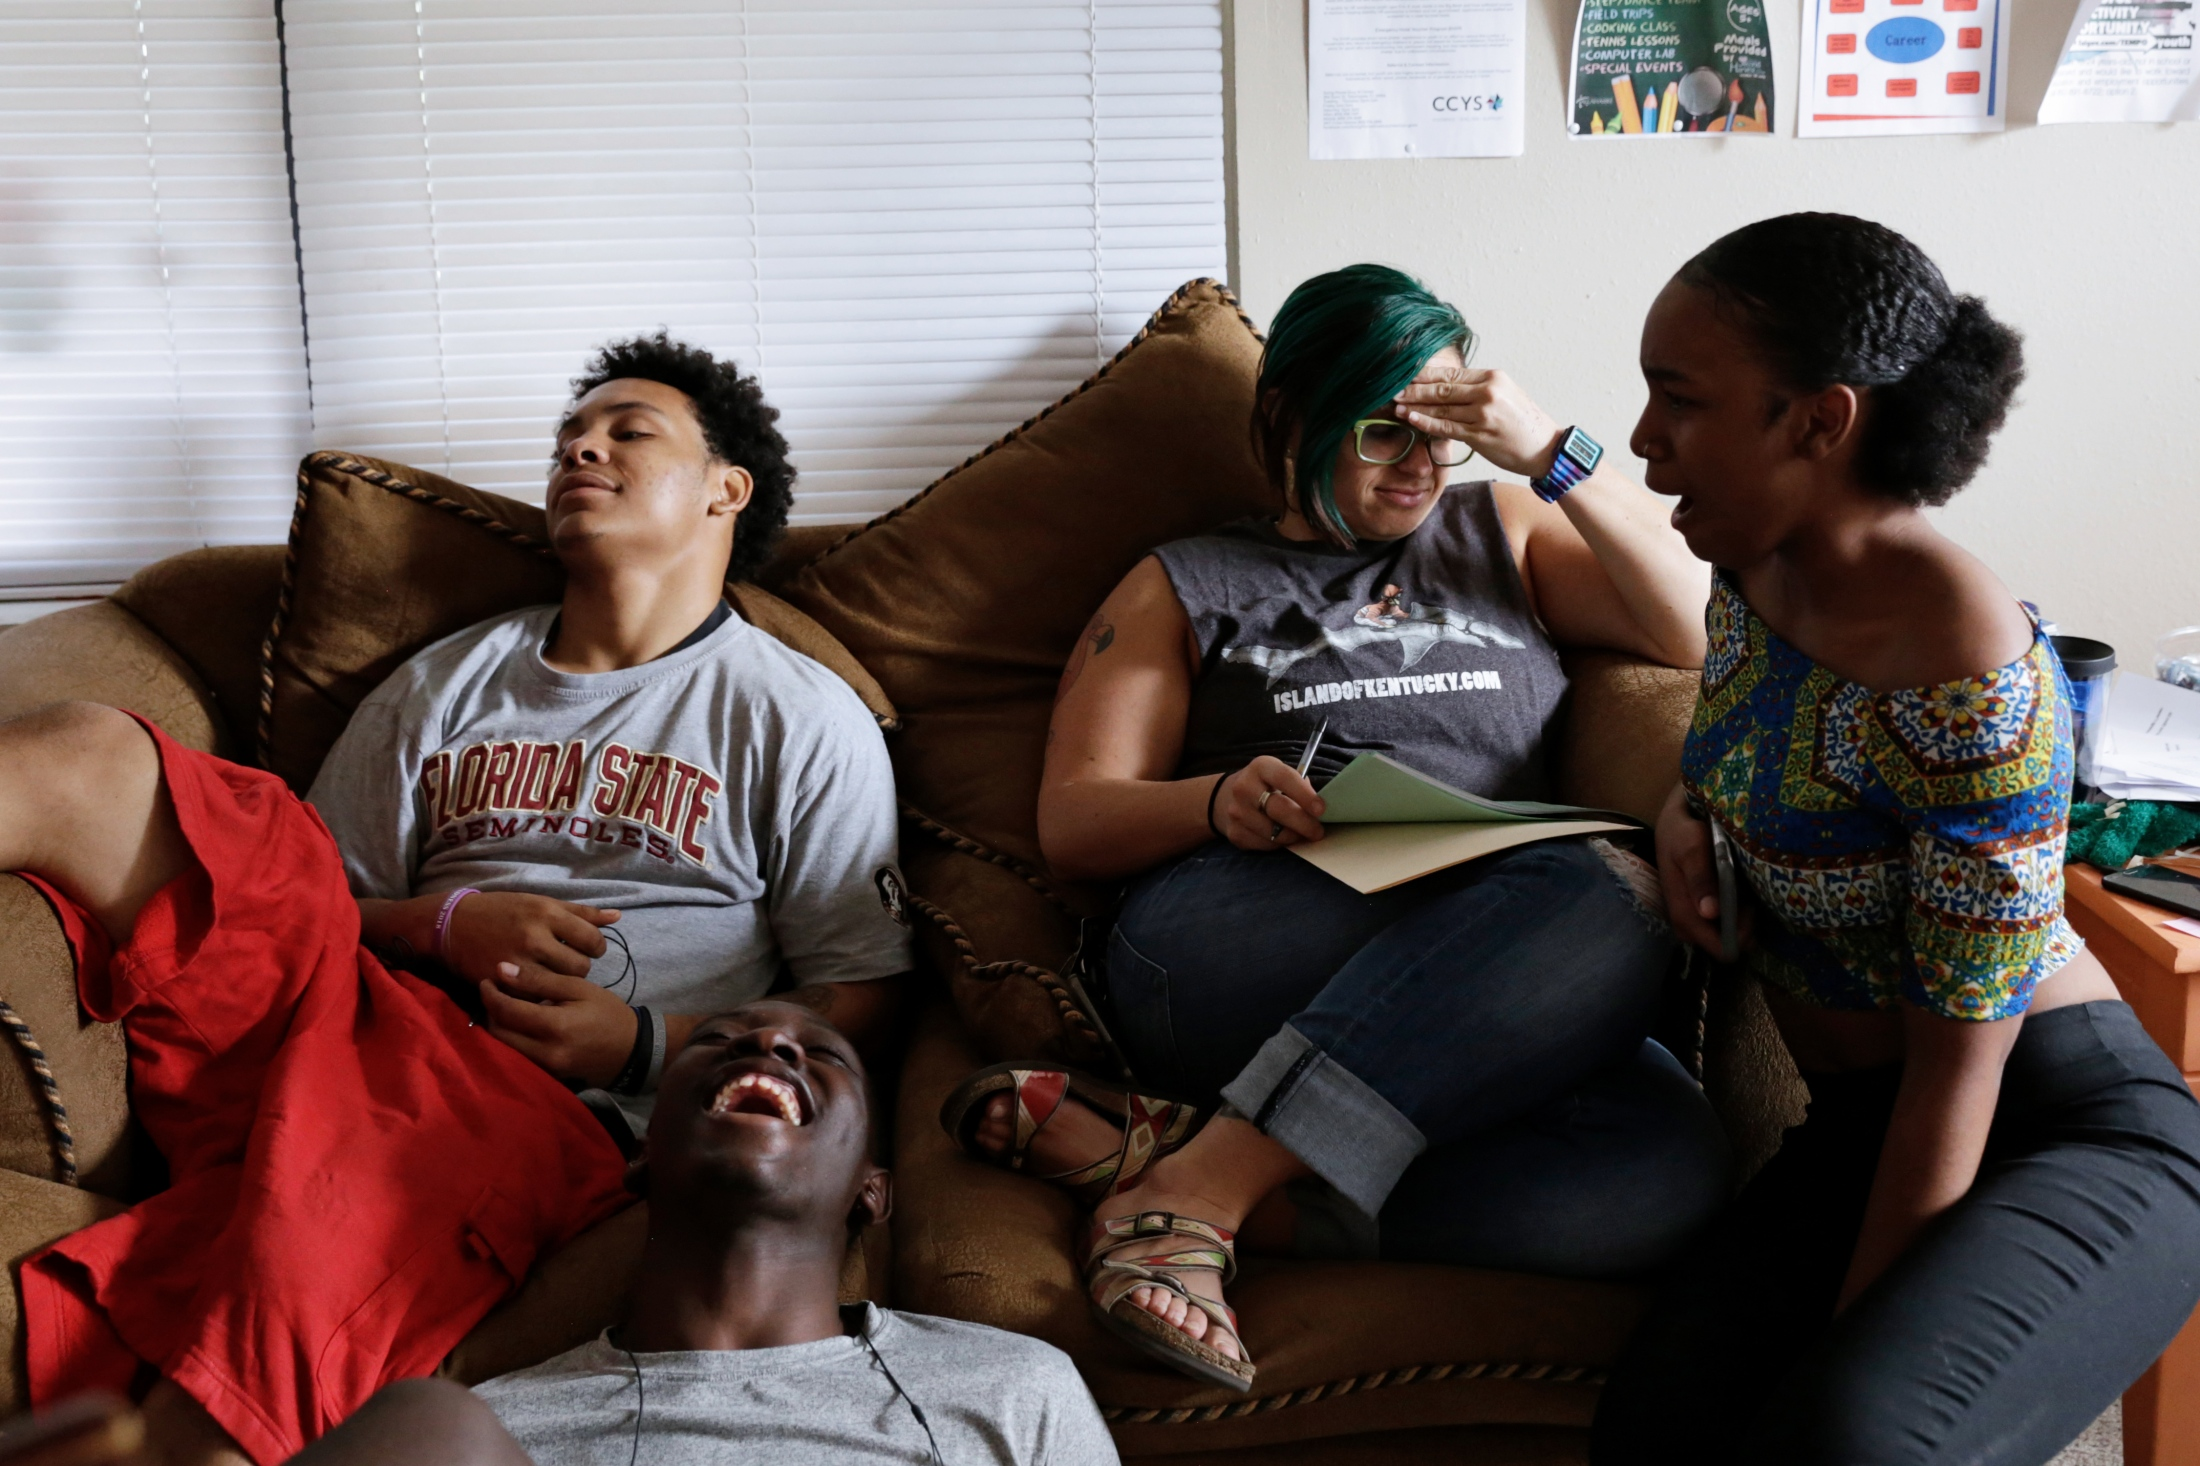 Mike McLaughlin, Ladarius Simmons, caseworker Erin Foley and Samiah Williams react to Ladarius's latest joke at the drop-in center Going Places. Going Places takes an informal approach enabling caseworkers to establish trust with the youth who visit.